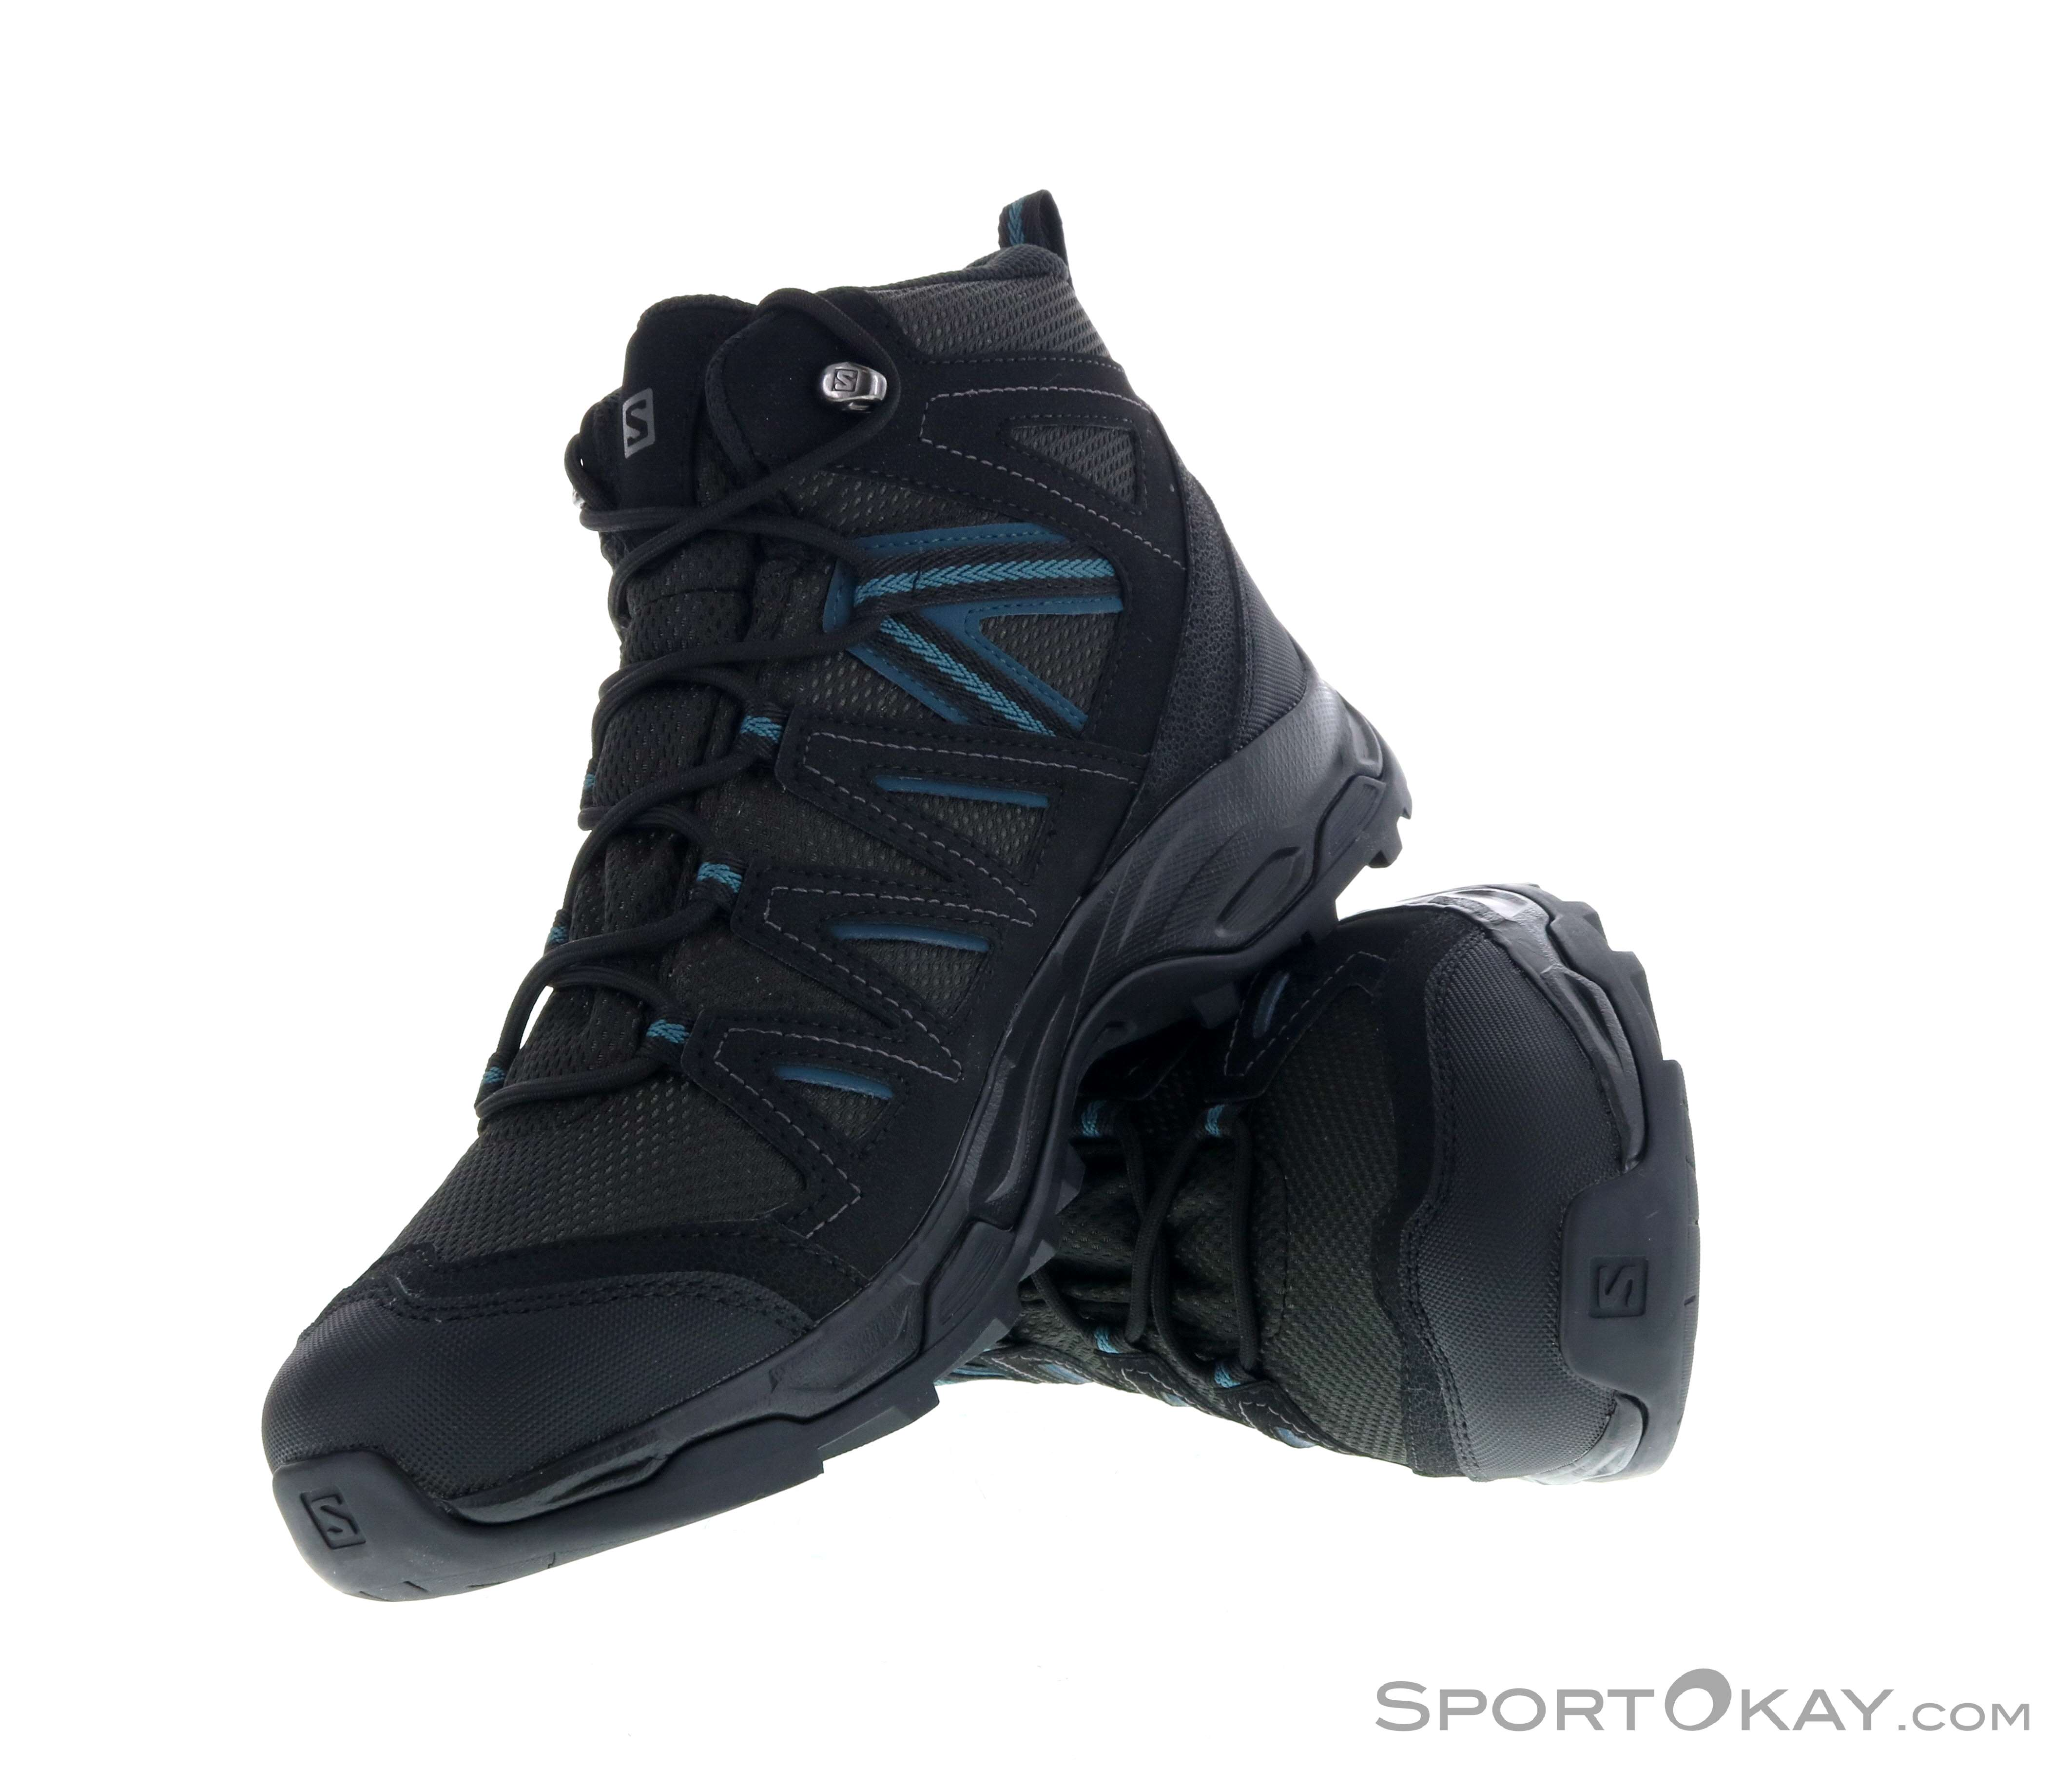 Salomon Hillrock Mid GTX Mens Trekking Shoes Gore Tex